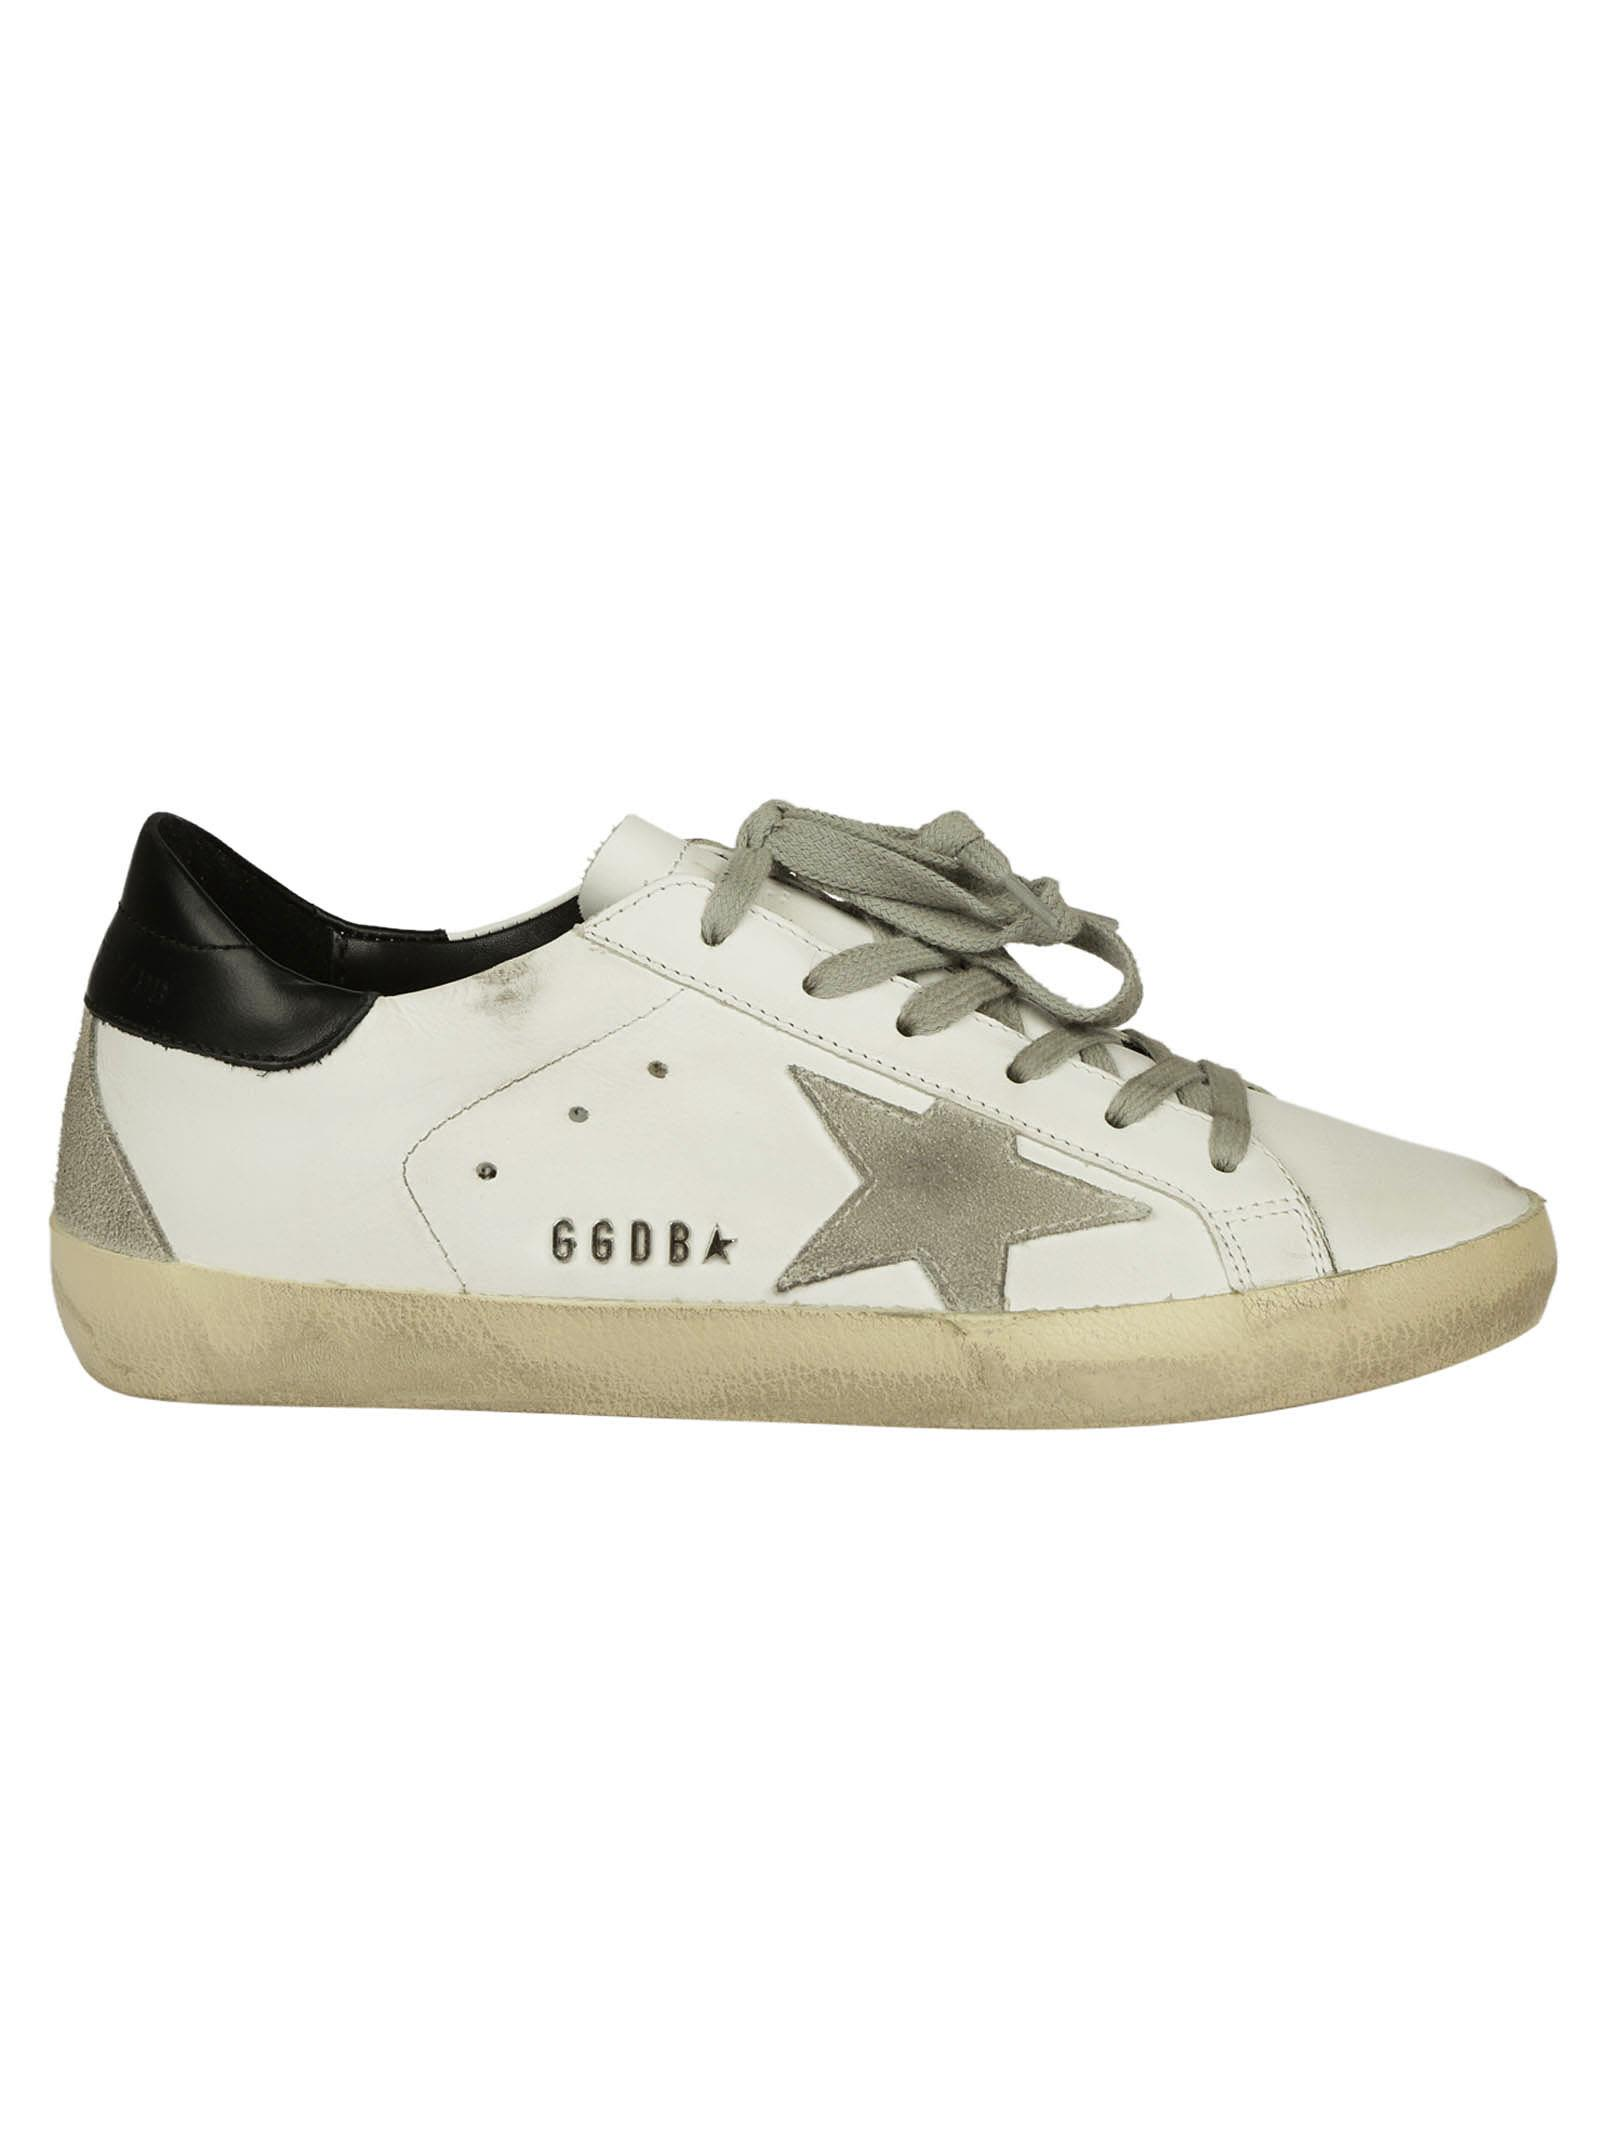 golden goose golden goose deluxe brand superstar sneakers women 39 s sneakers italist. Black Bedroom Furniture Sets. Home Design Ideas